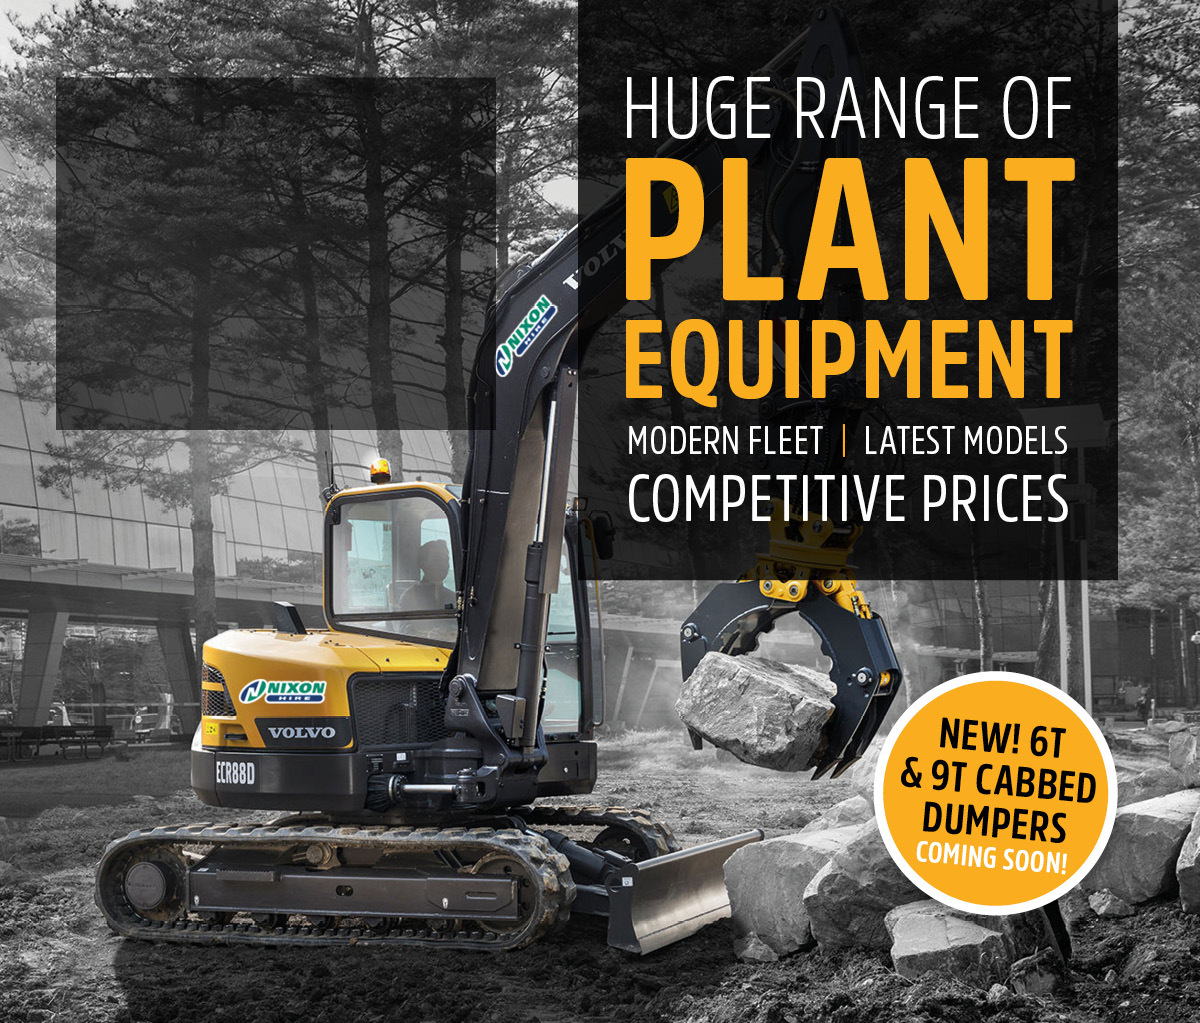 Huge Range Of Modern Plant Equipment Available To Hire At Competitive Prices